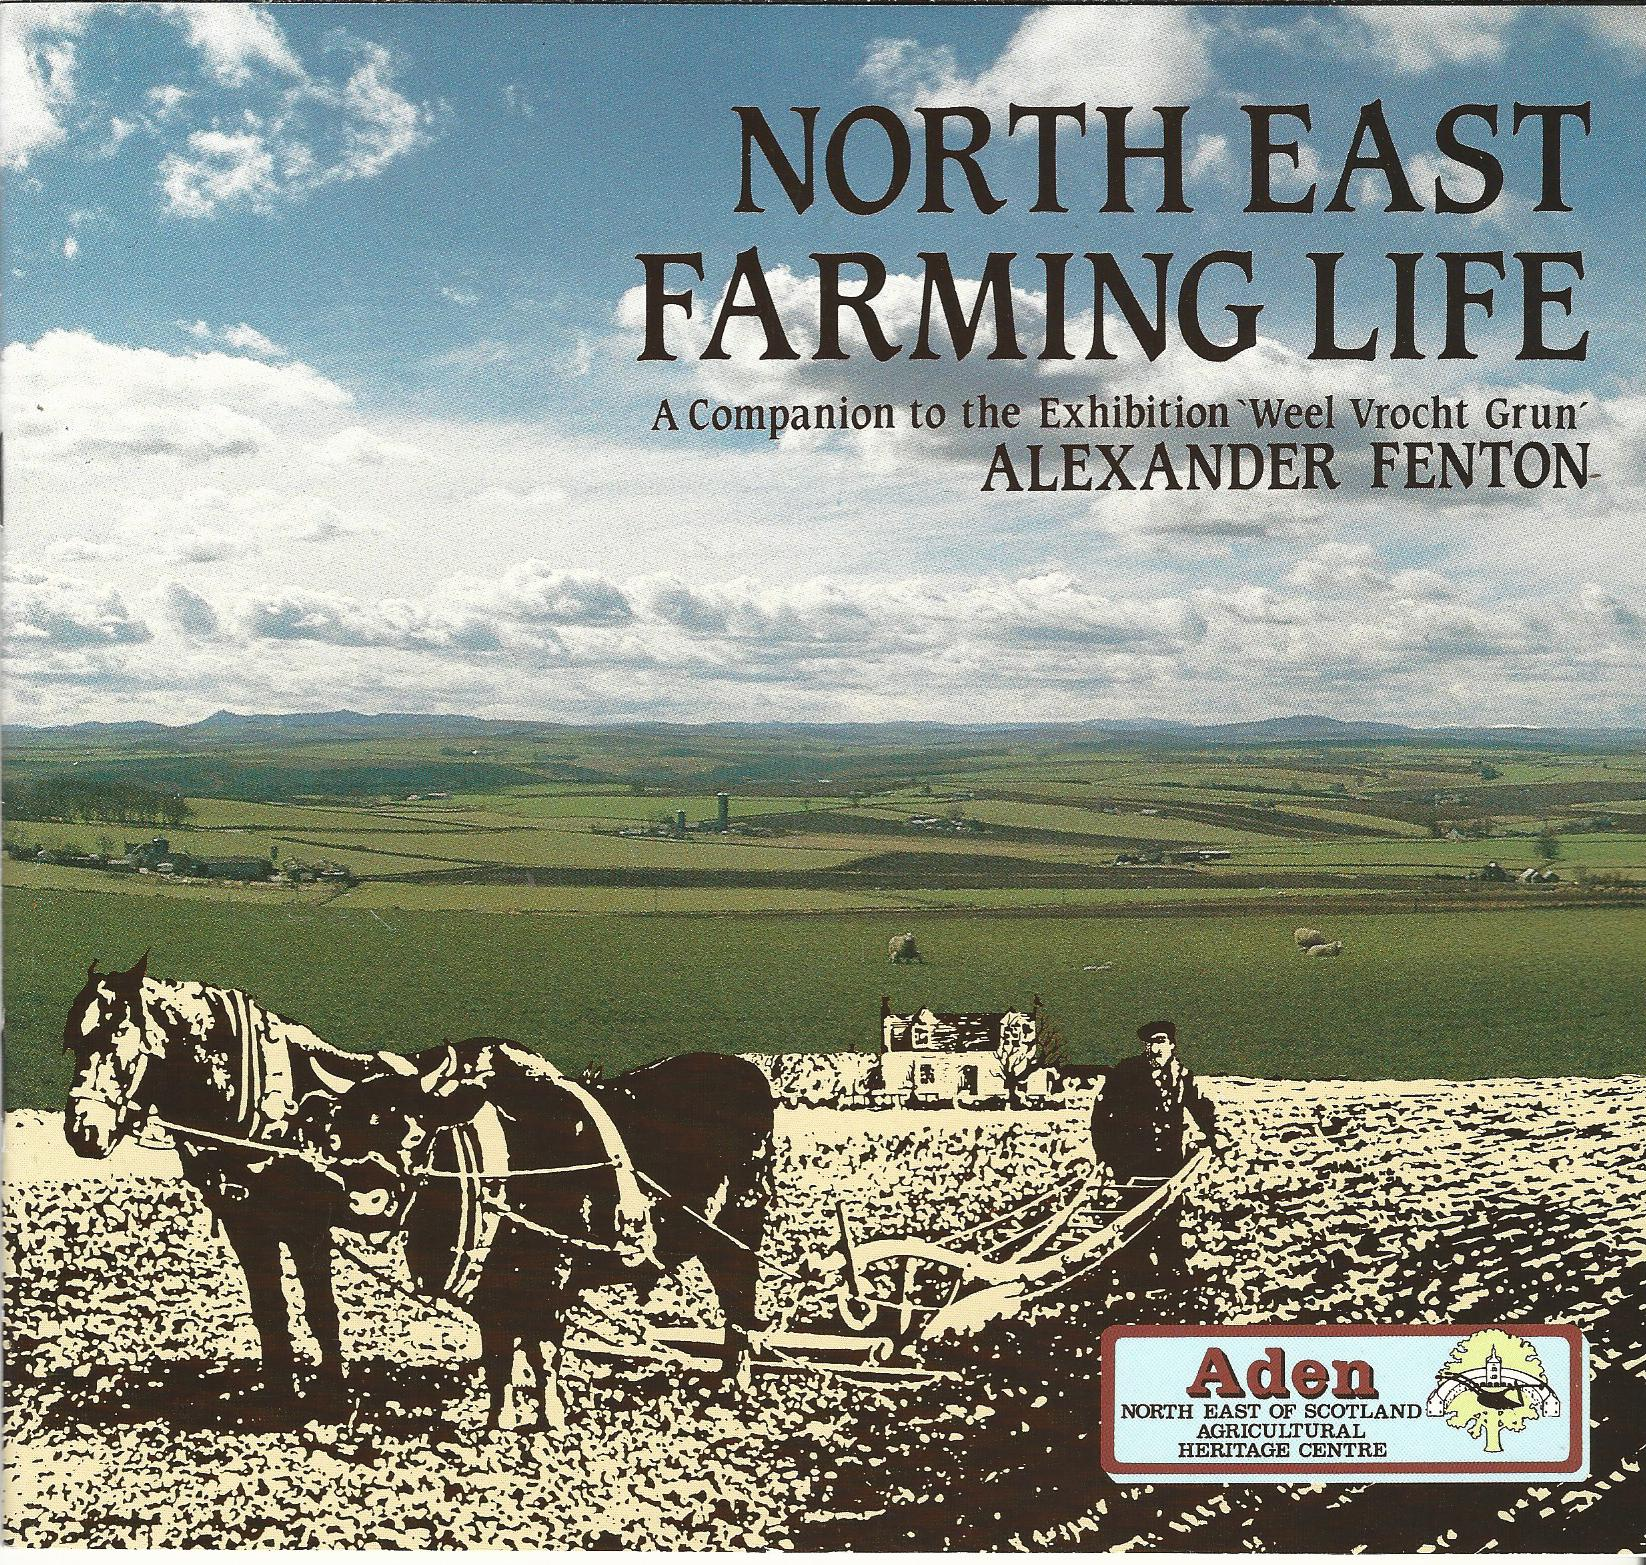 Image for North East Farming Life: A Companion to the Exhibition 'Weel Vrocht Grun'.